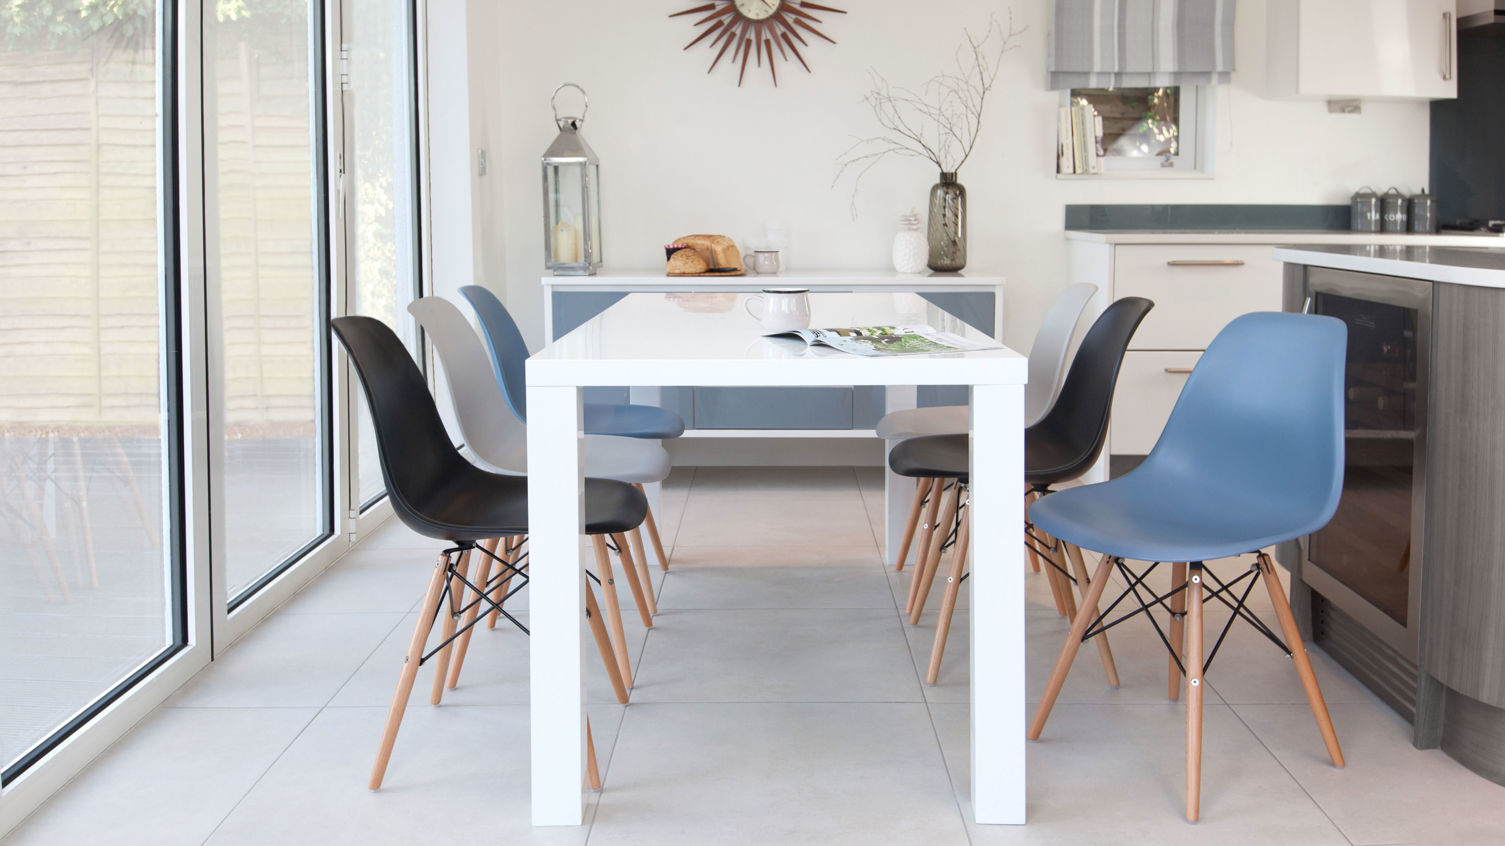 Amazing photo of Plastic Dining Chairs Uk Delivery Miss You 610 Plastic Dining Chair 2  with #4D637E color and 1505x846 pixels